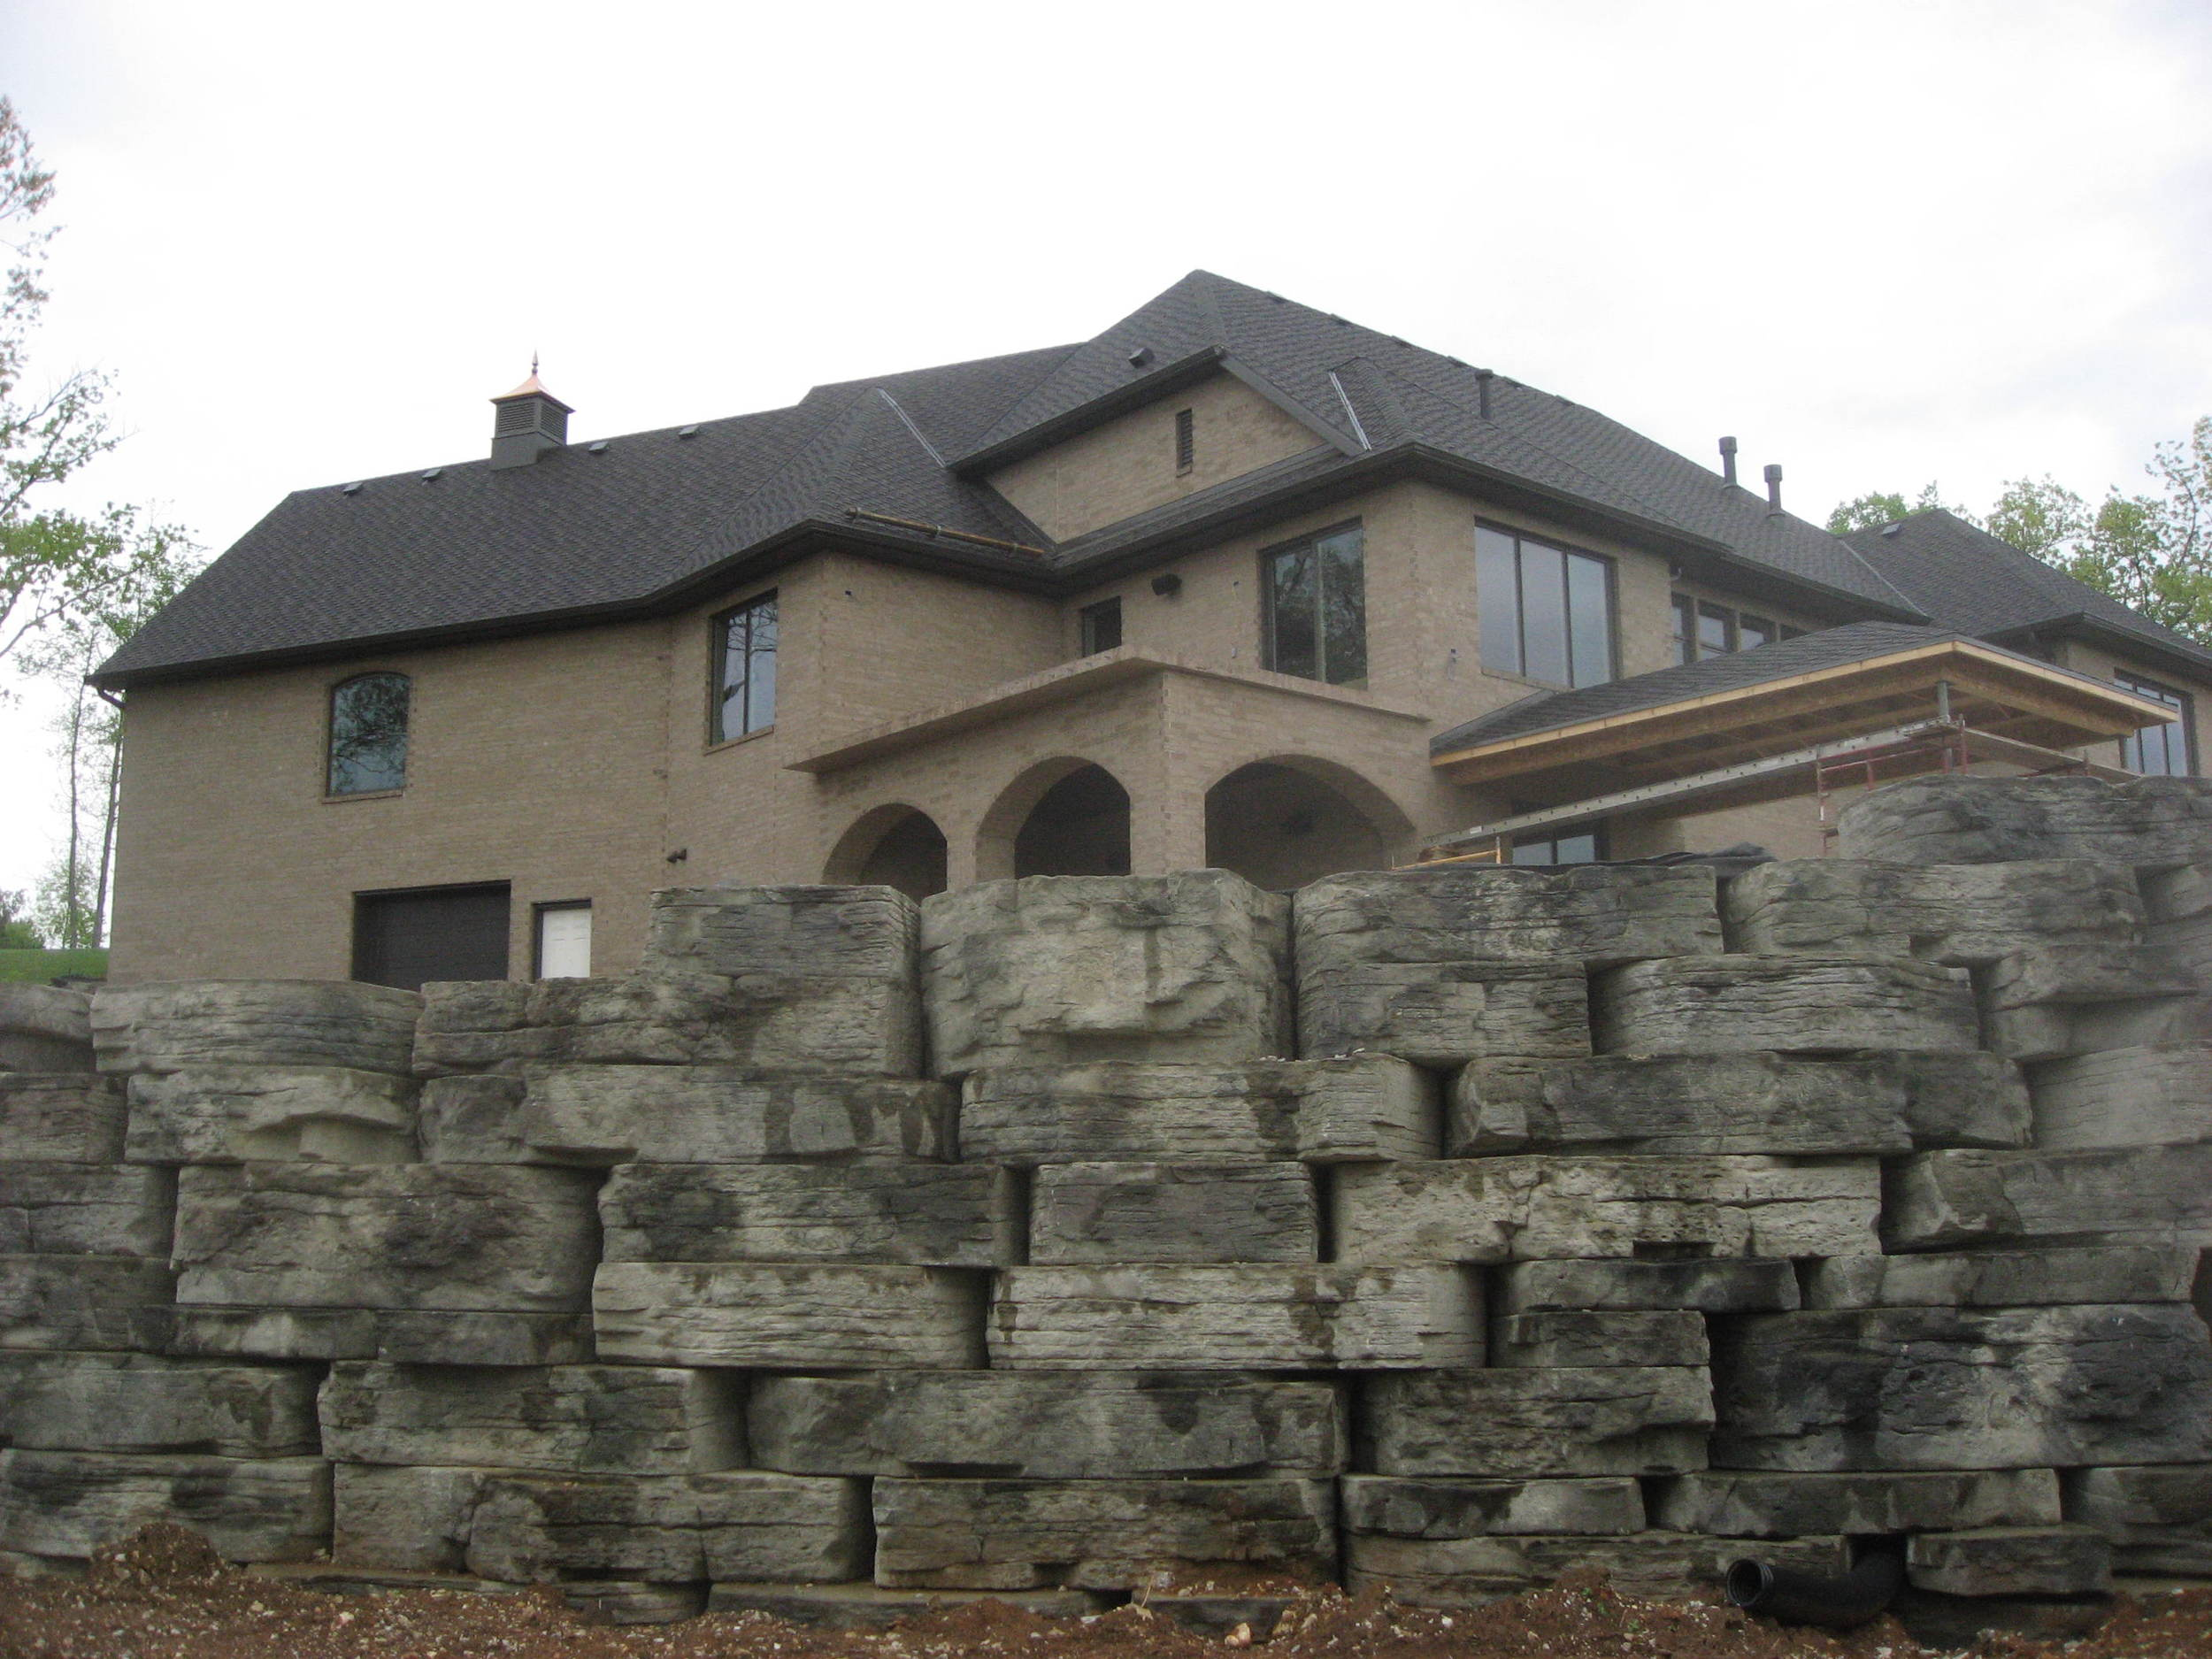 rosetta_outcropping_cedar-valley_stones_boulders_hardscape.JPG